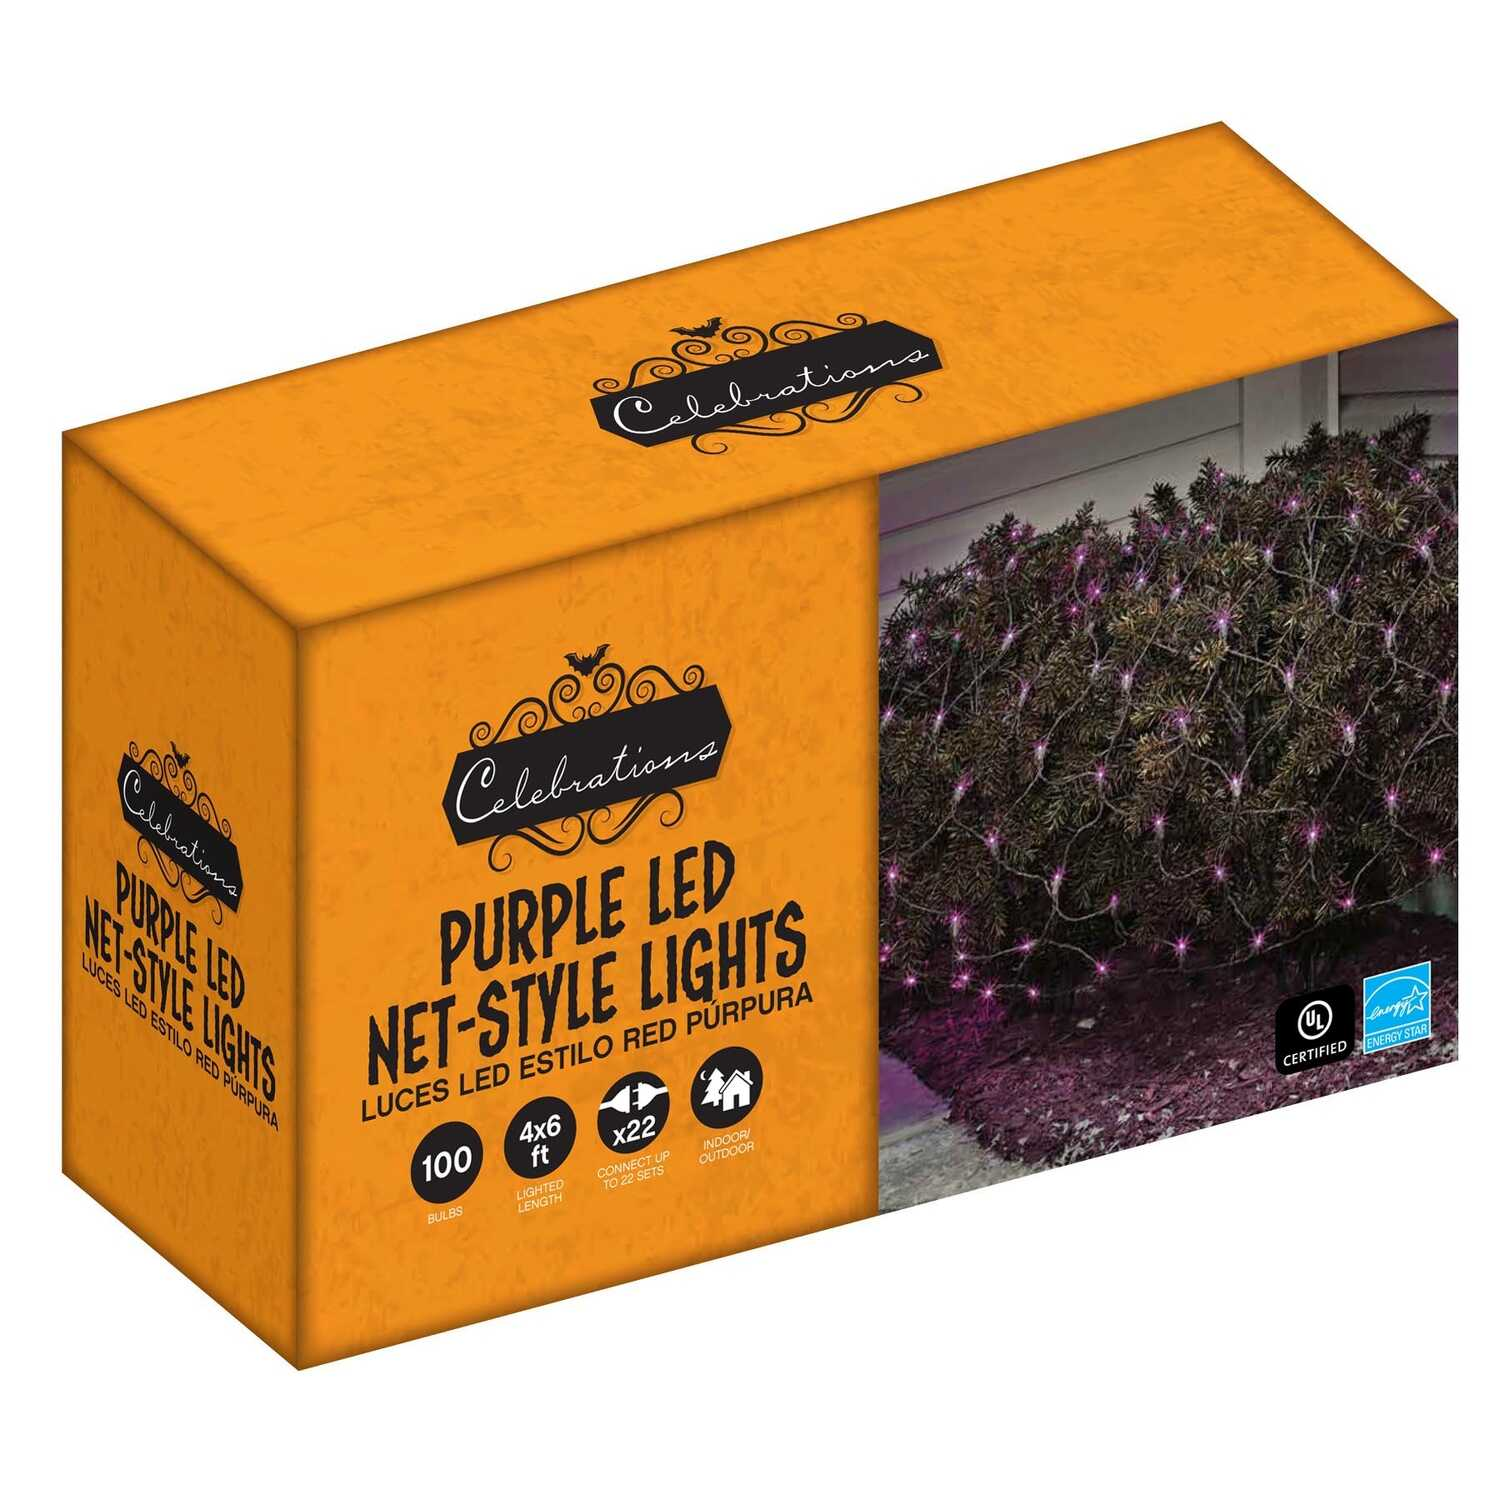 Celebrations  LED Net  Lighted Purple  Halloween Lights  6 in. L 100 count